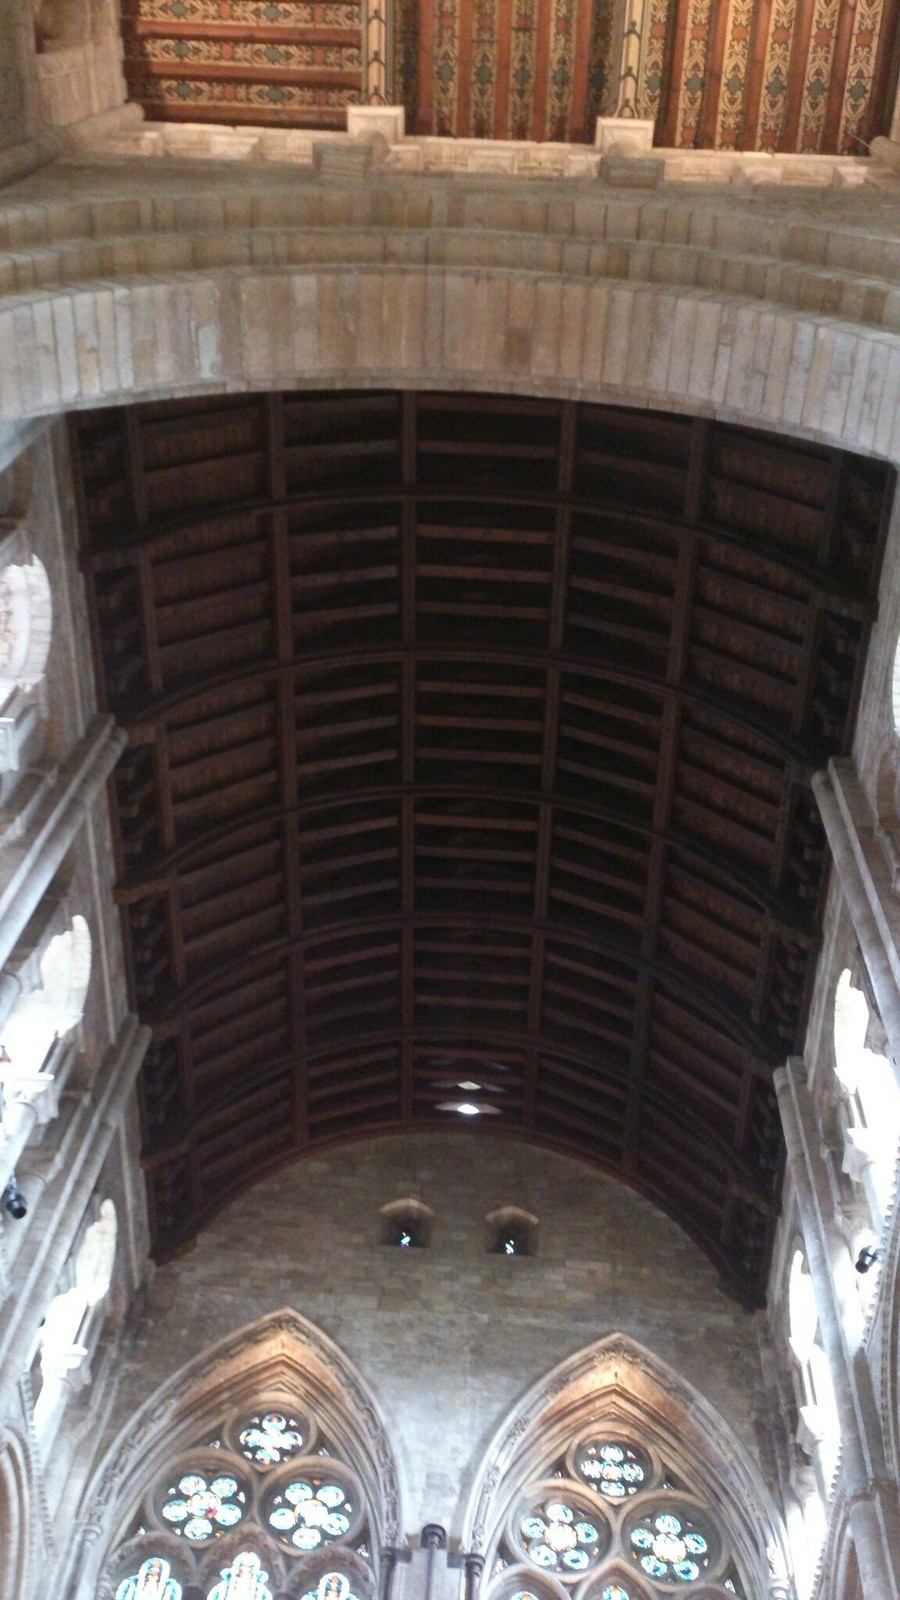 Vaulted Ceiling, Romsey Abbey SWC Walk 58 Mottisfont and Dunbridge to Romsey